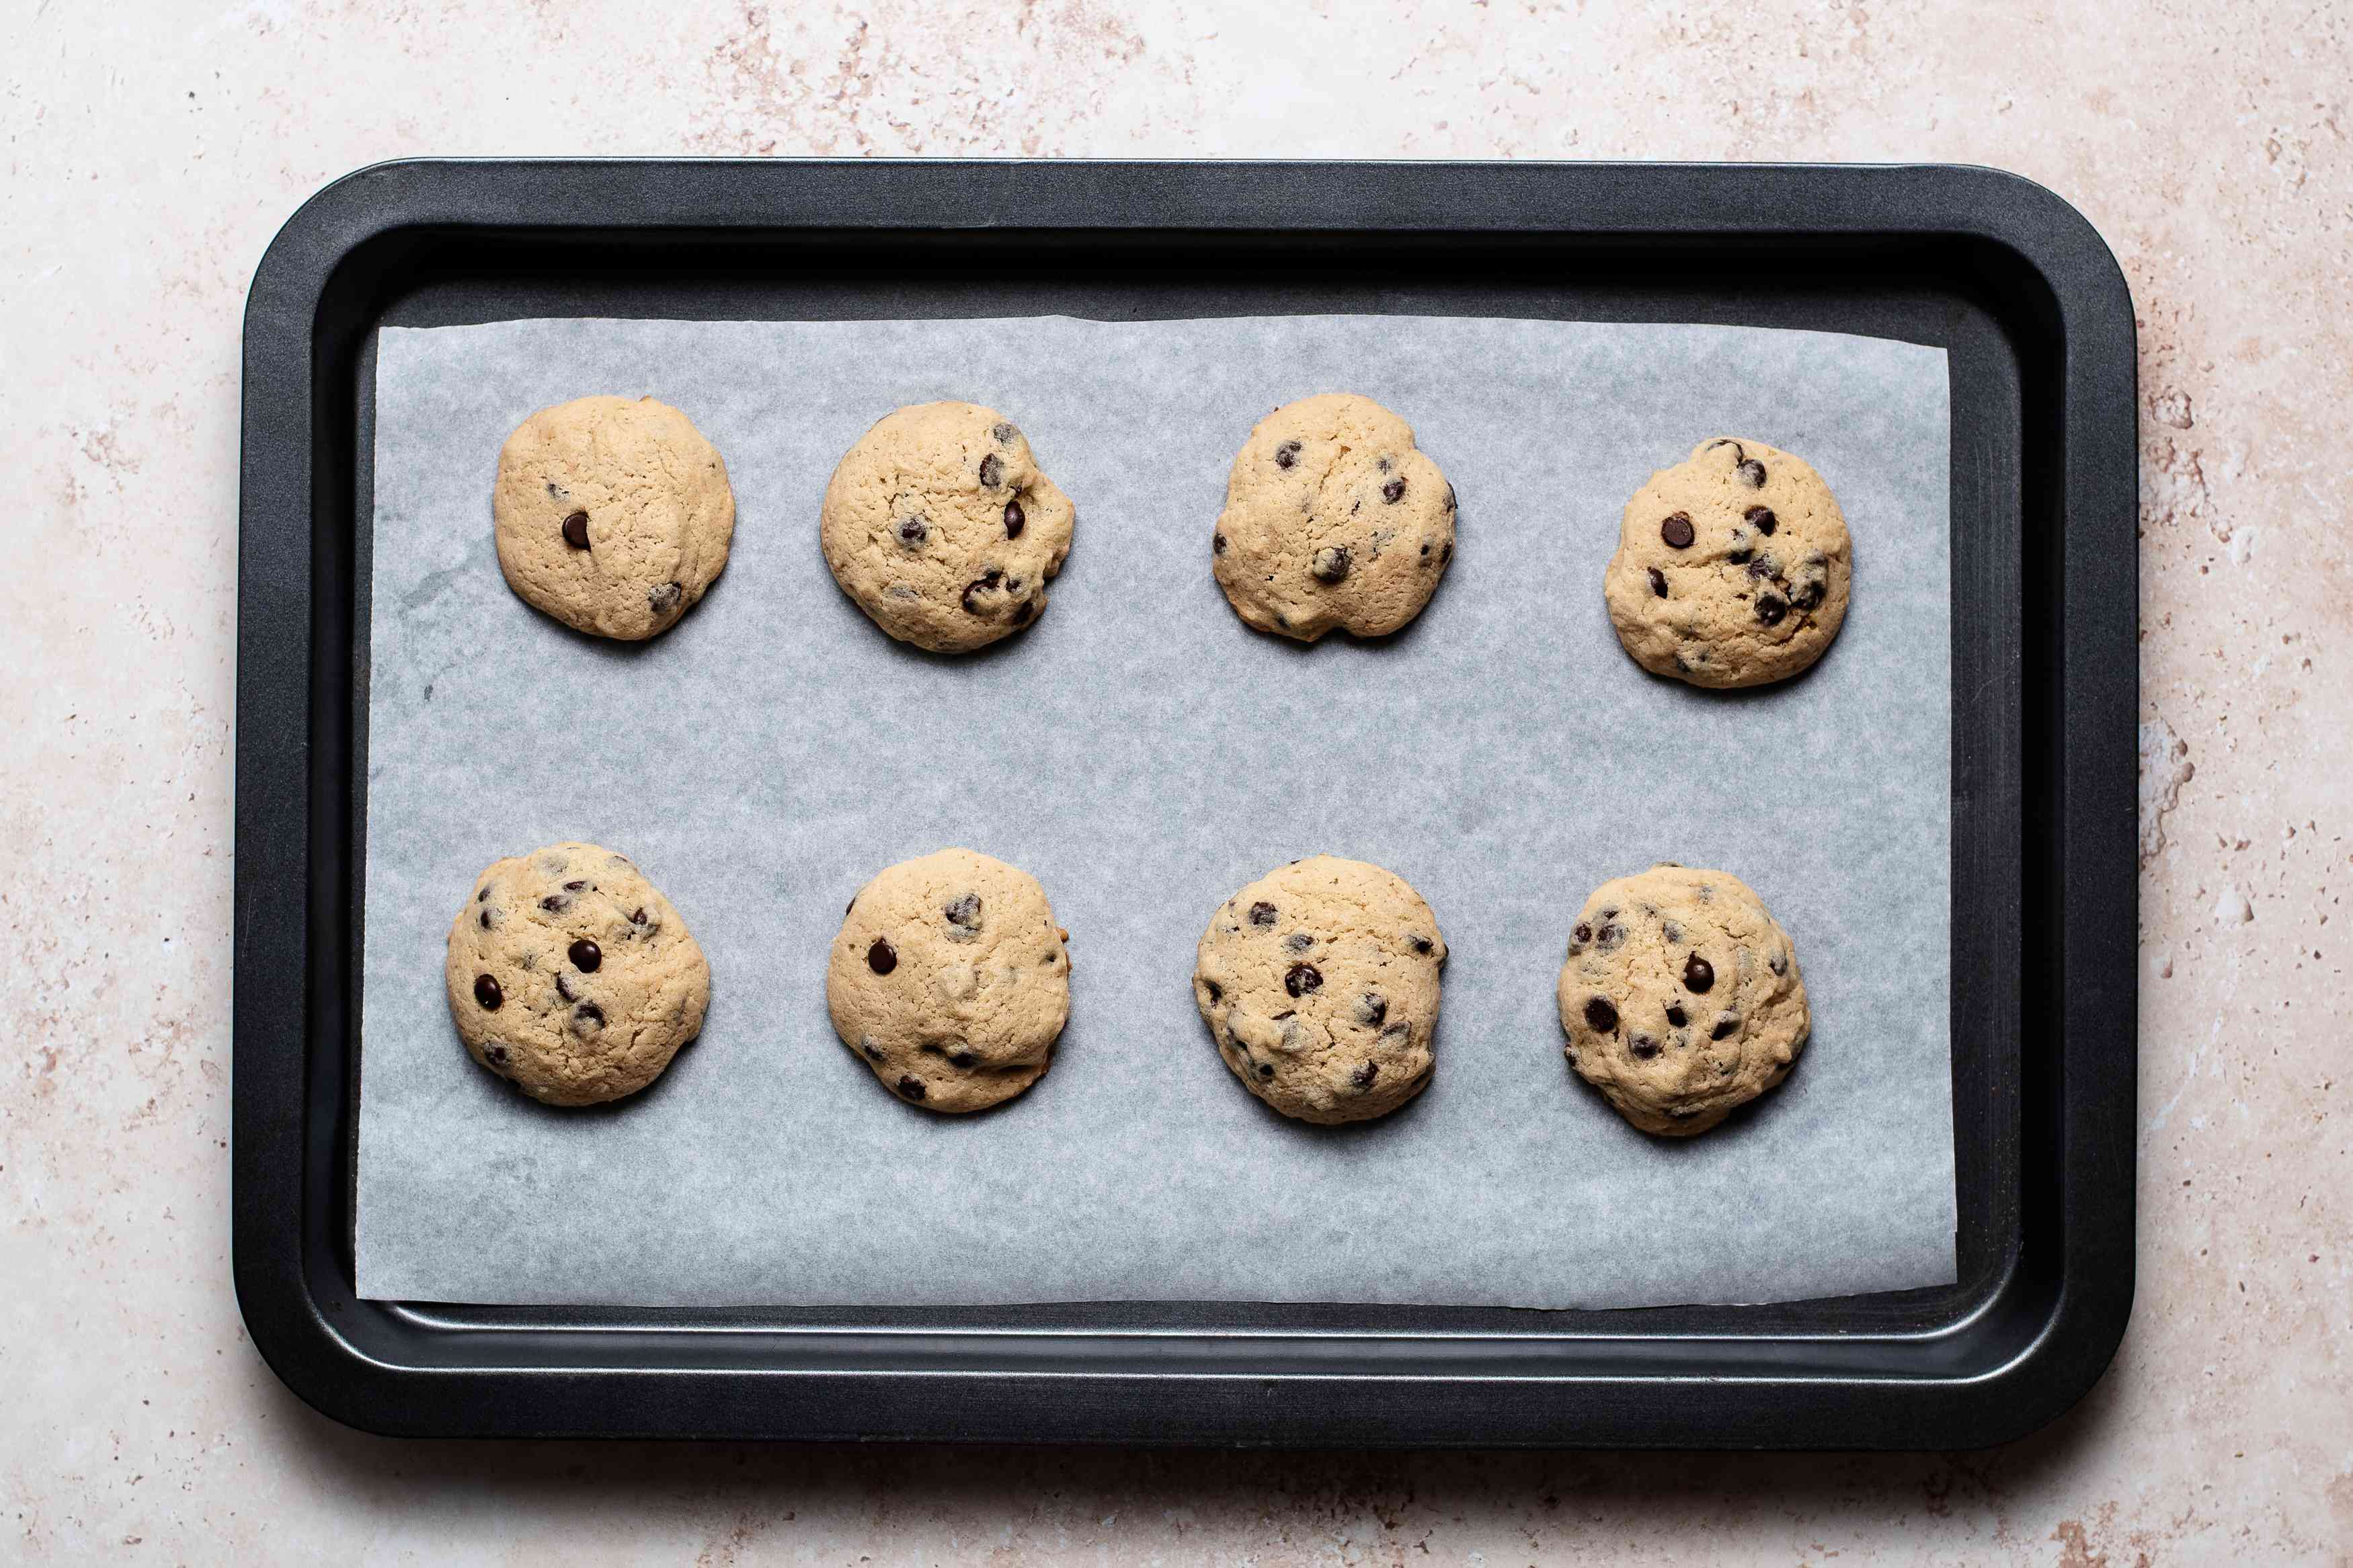 Cream Cheese Chocolate Chip Cookies on a baking sheet